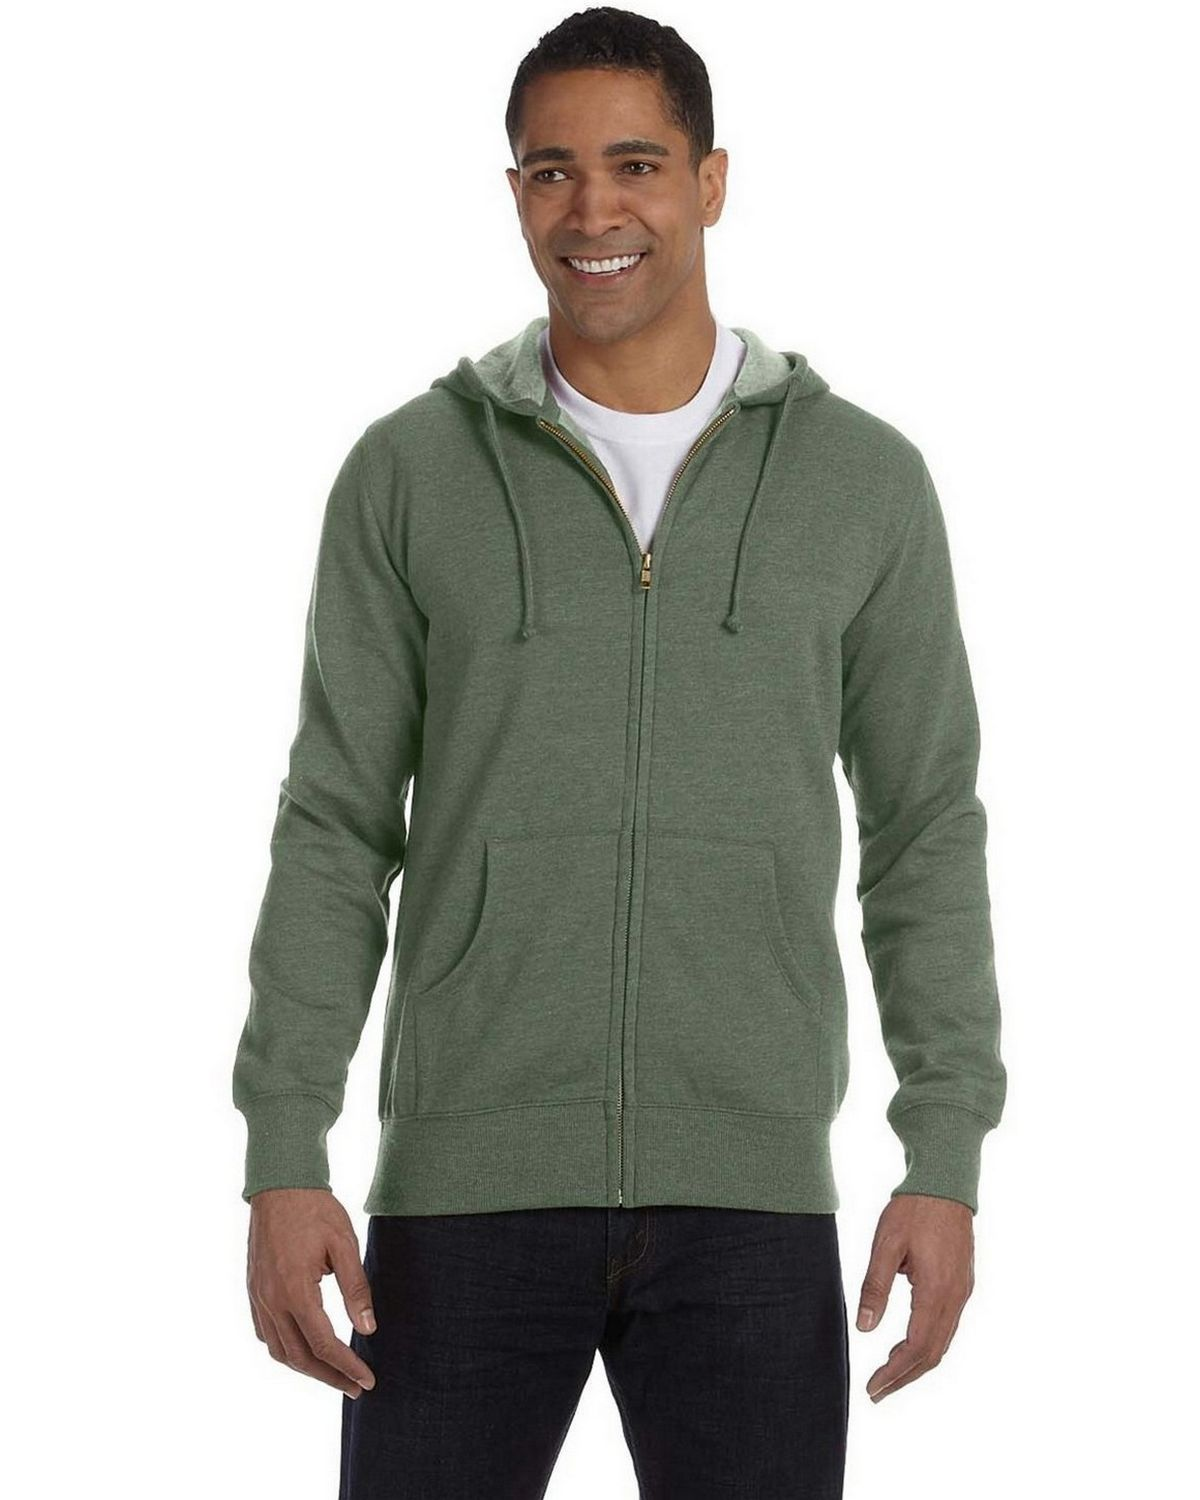 Econscious EC5680 Unisex Organic/Recycled Heathered Hood - Military Green - S EC5680